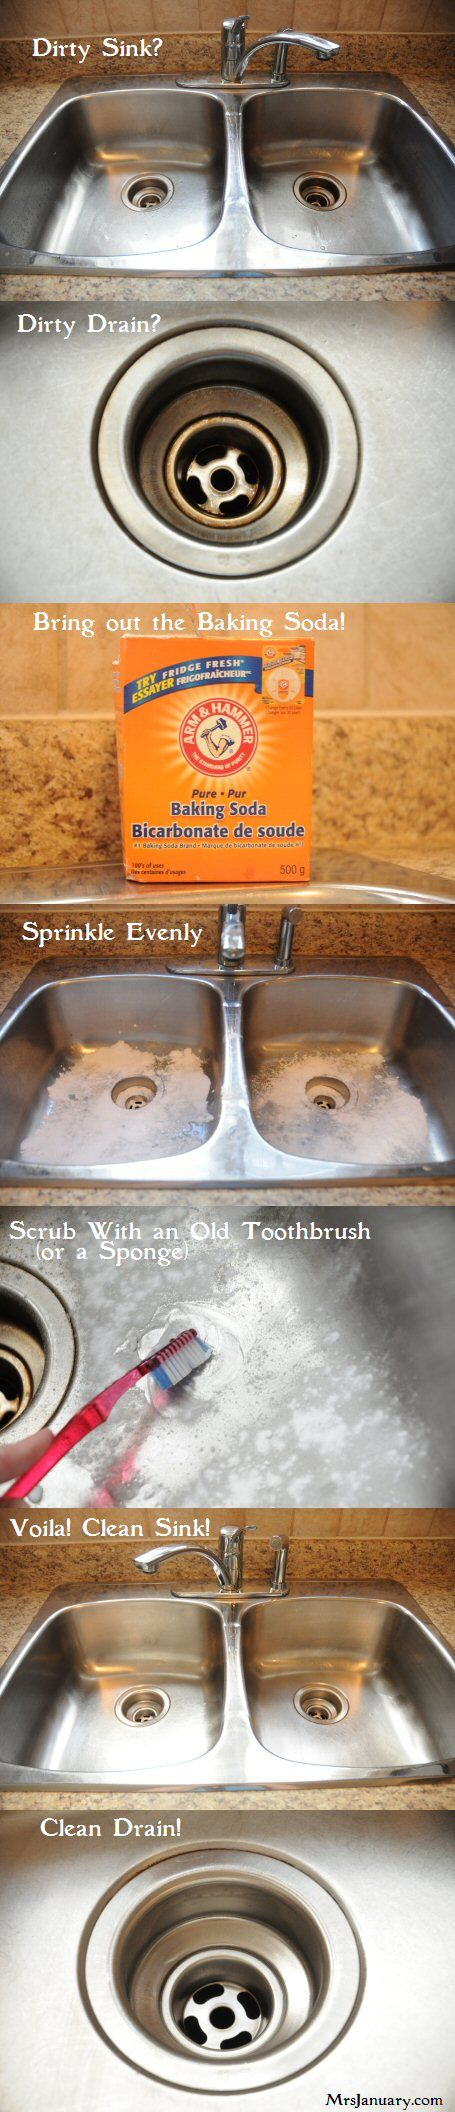 How to Shine a Stainless Steel Sink.  Cleaning my entire house with baking soda in college got me all my deposit back :D